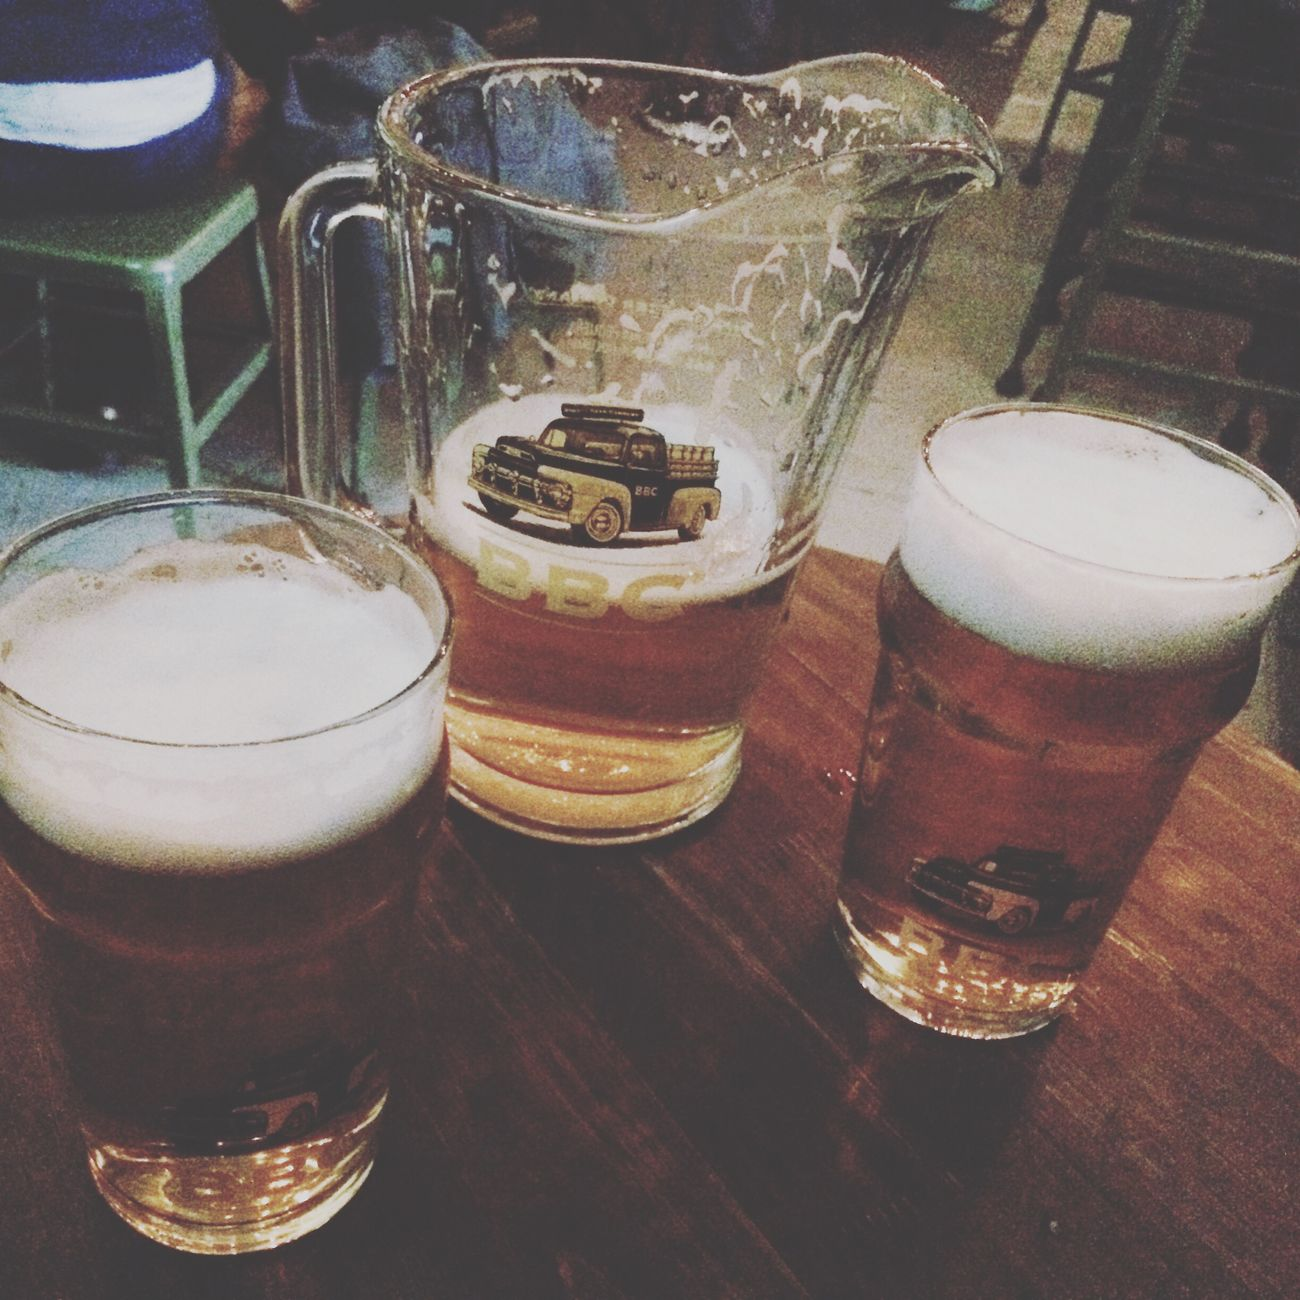 Beer - Alcohol BBC Bogotabeercompany Drink Beer Glass Refreshment Food And Drink Alcohol Beer Frothy Drink